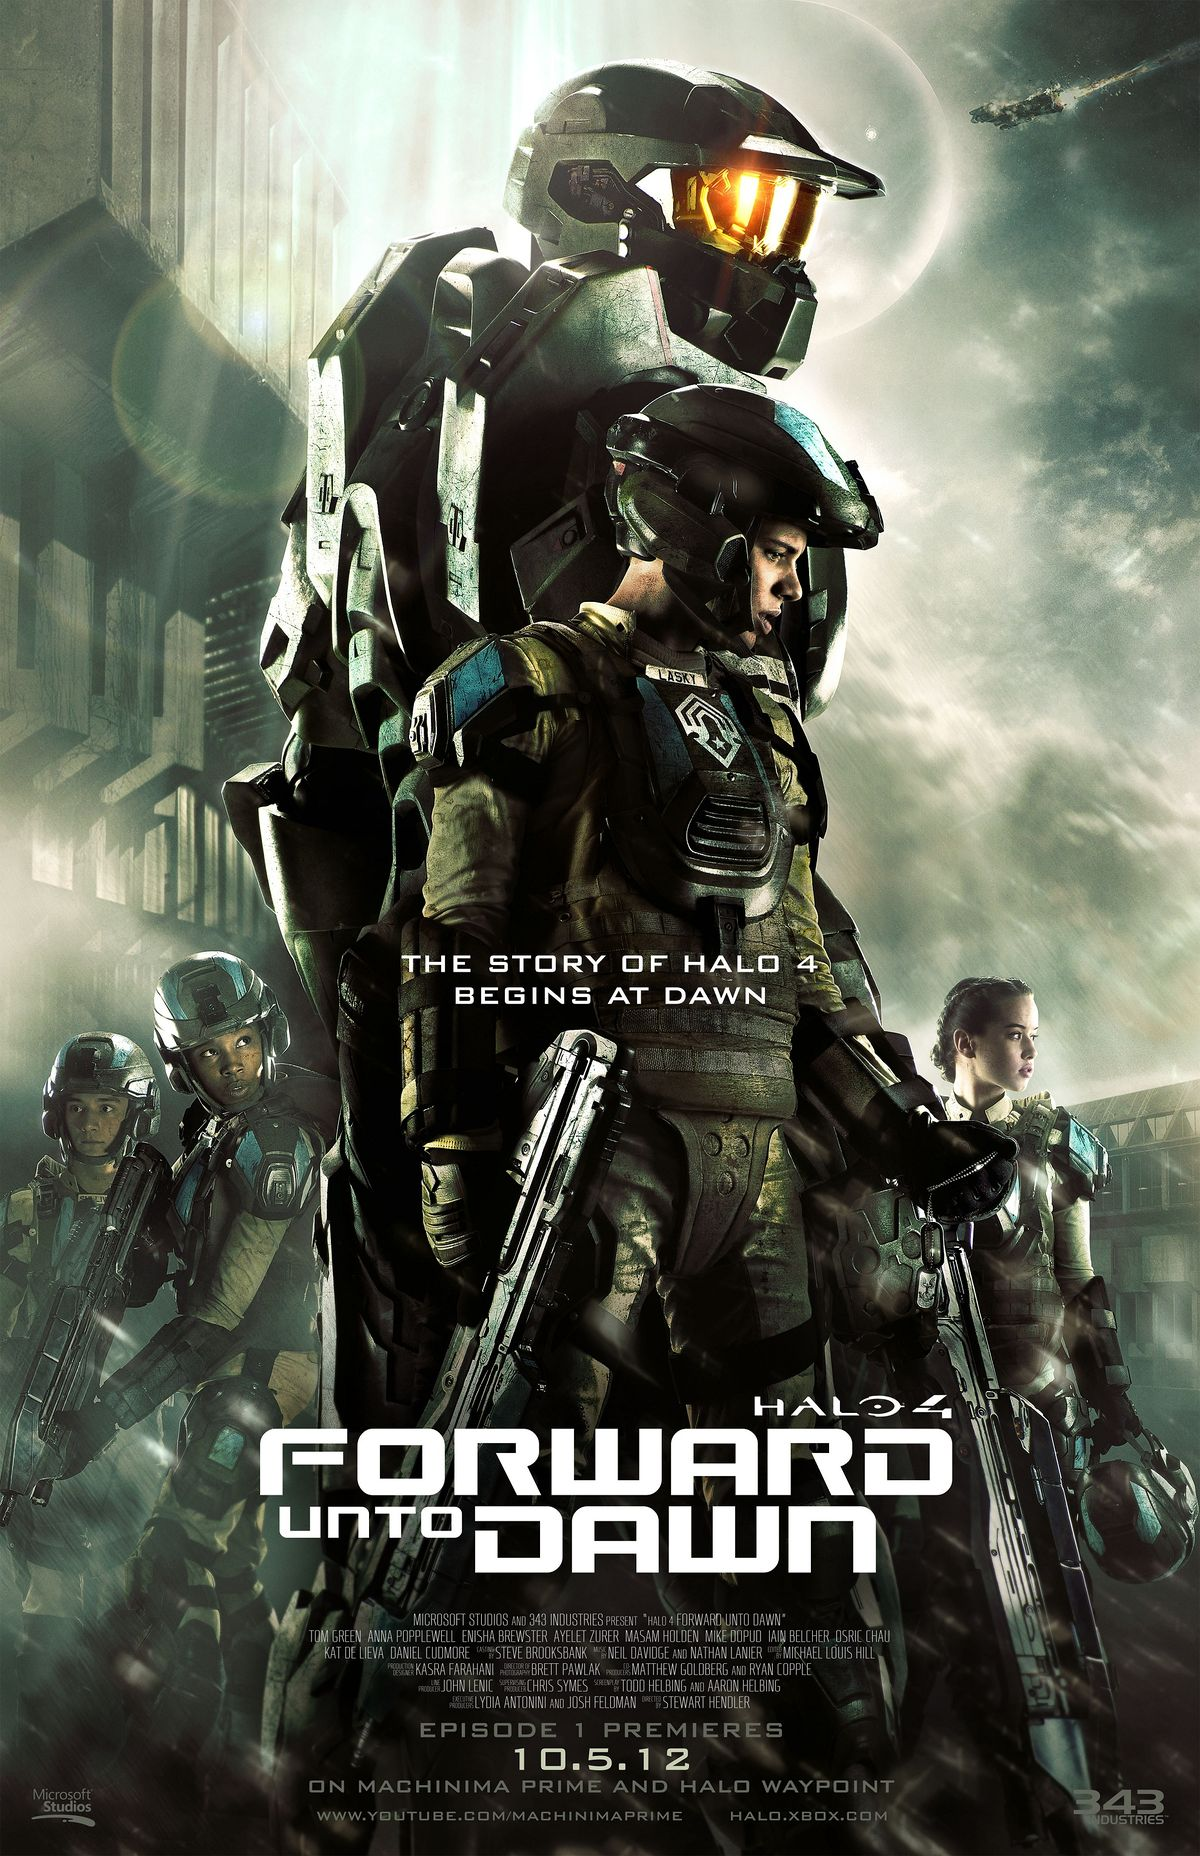 Halo 4 Forward Unto Dawn Film Halopedia The Halo Wiki